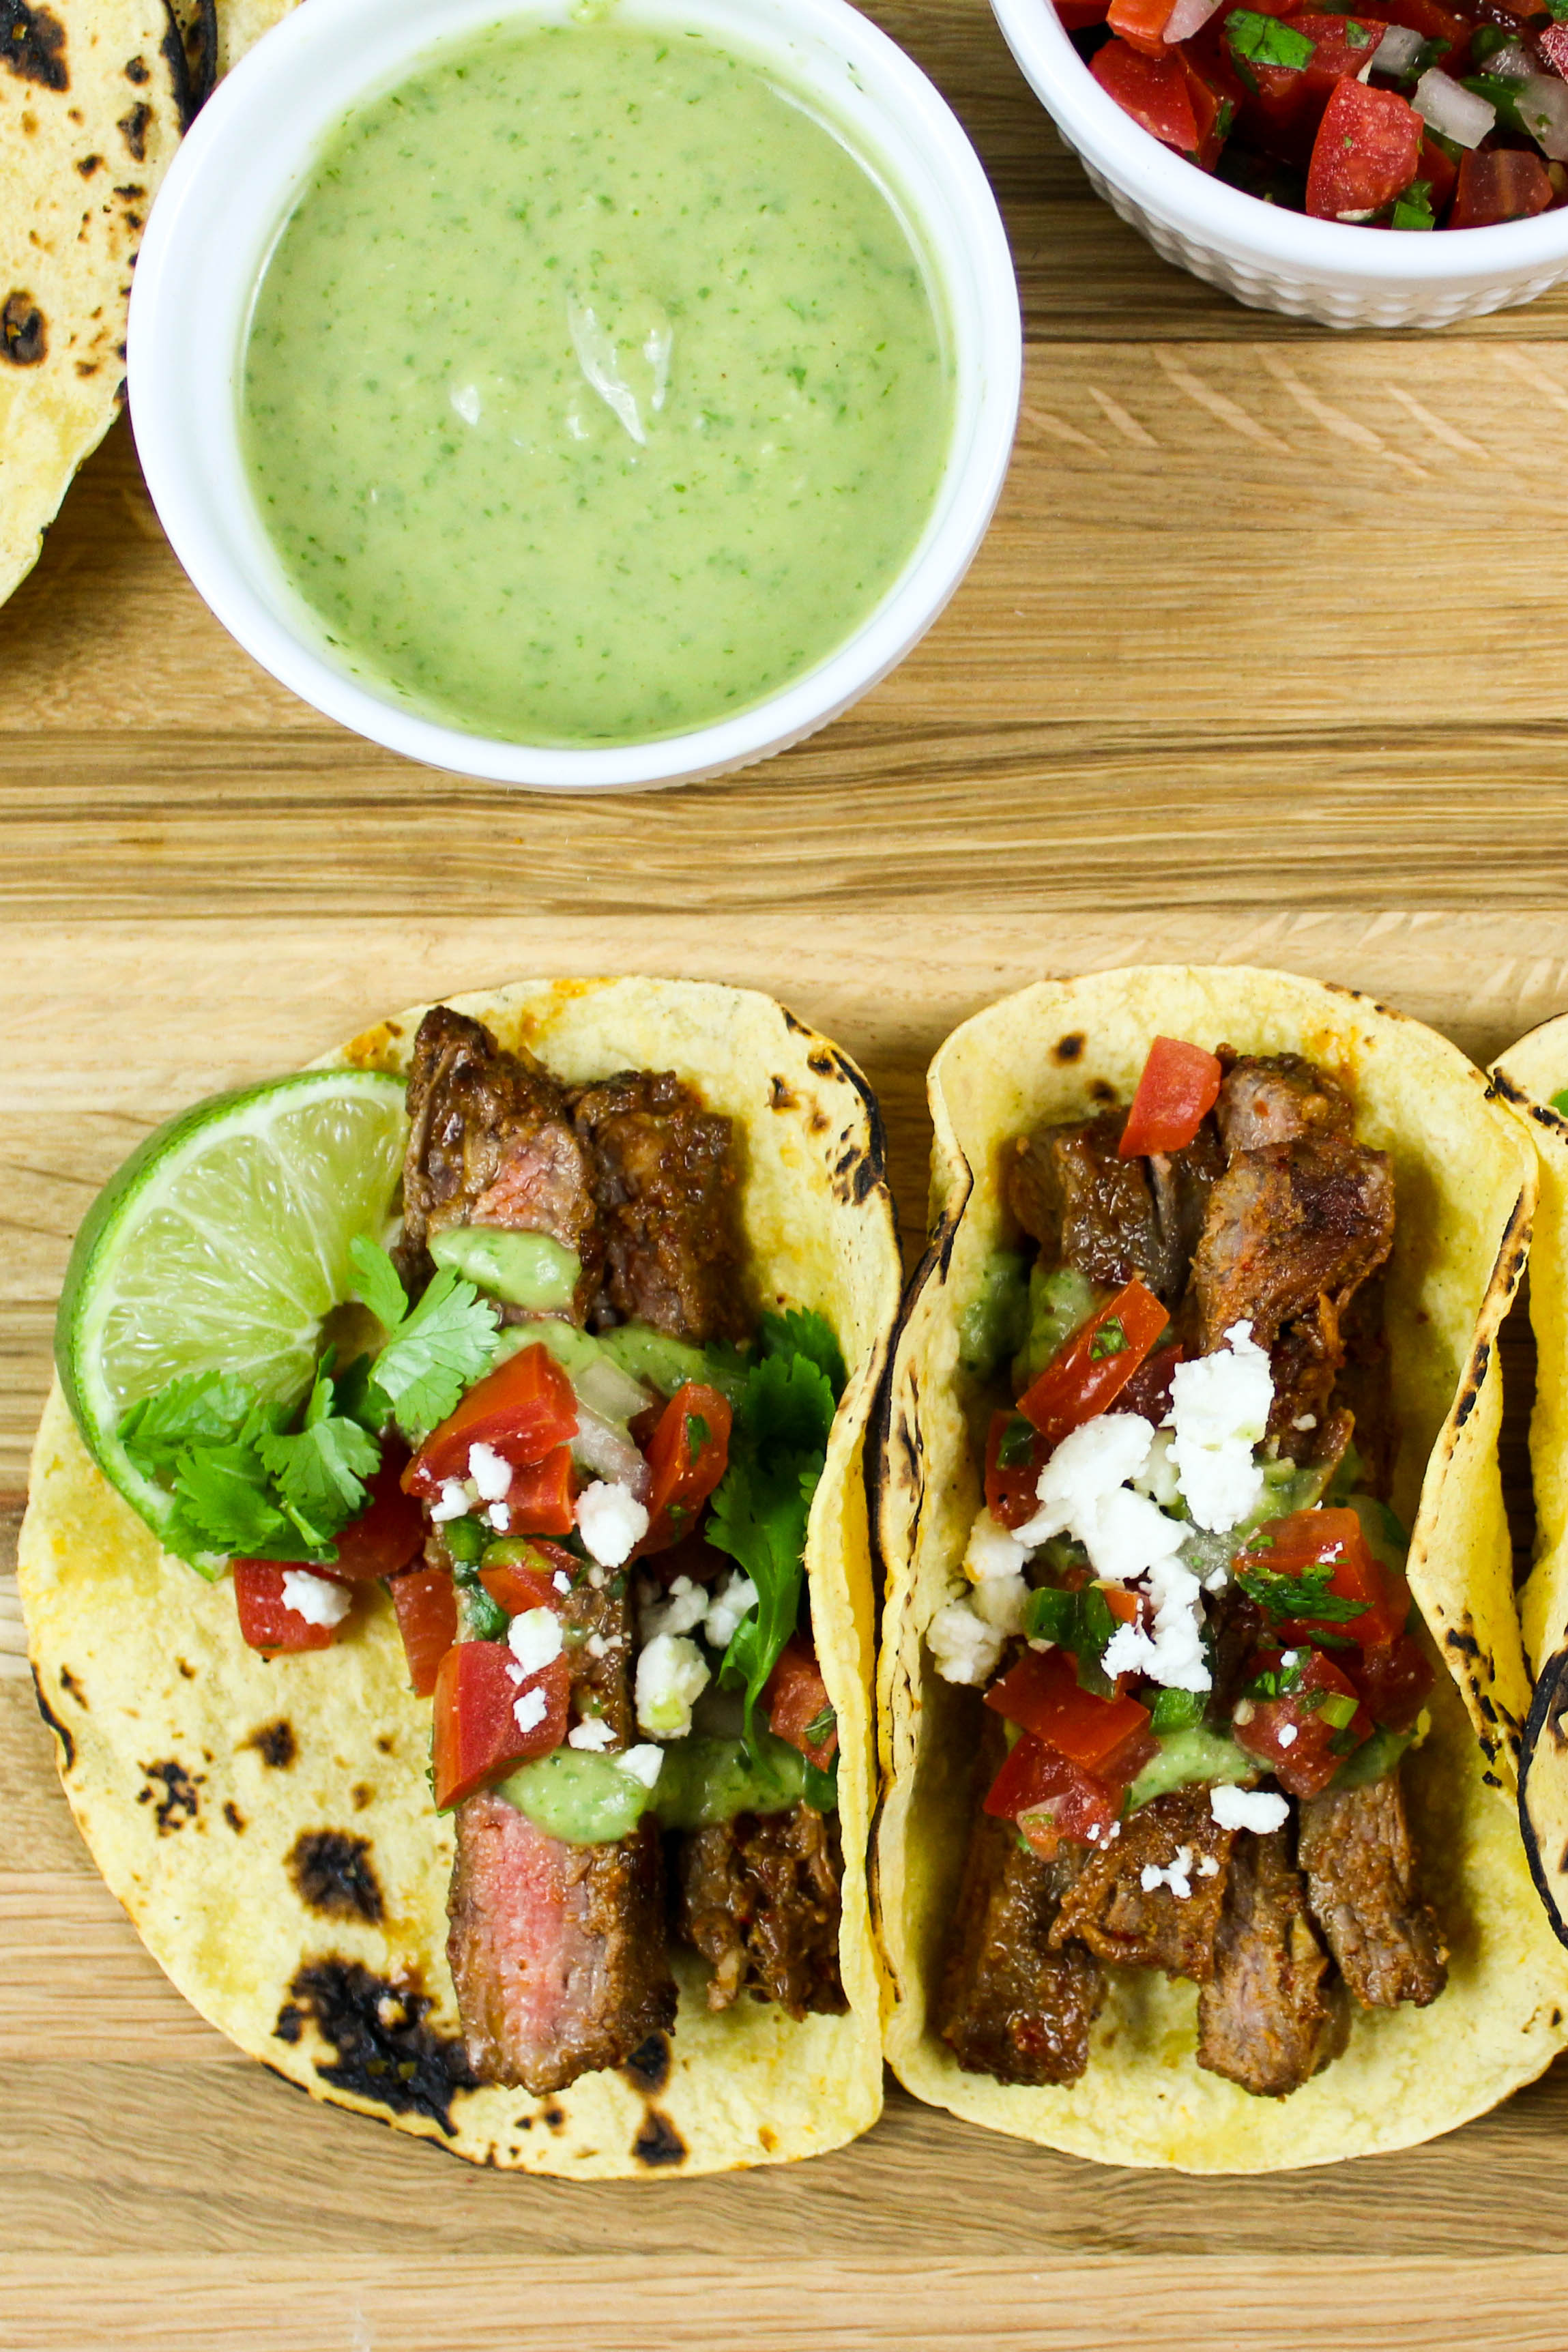 Carne Asada Tacos with Avocado Crema is marinated steak grilled to perfection served in a tortilla & topped with fresh Pico de Gallo & Avocado Crema. Weight Watchers friendly recipe! www.bitesofflavor.com